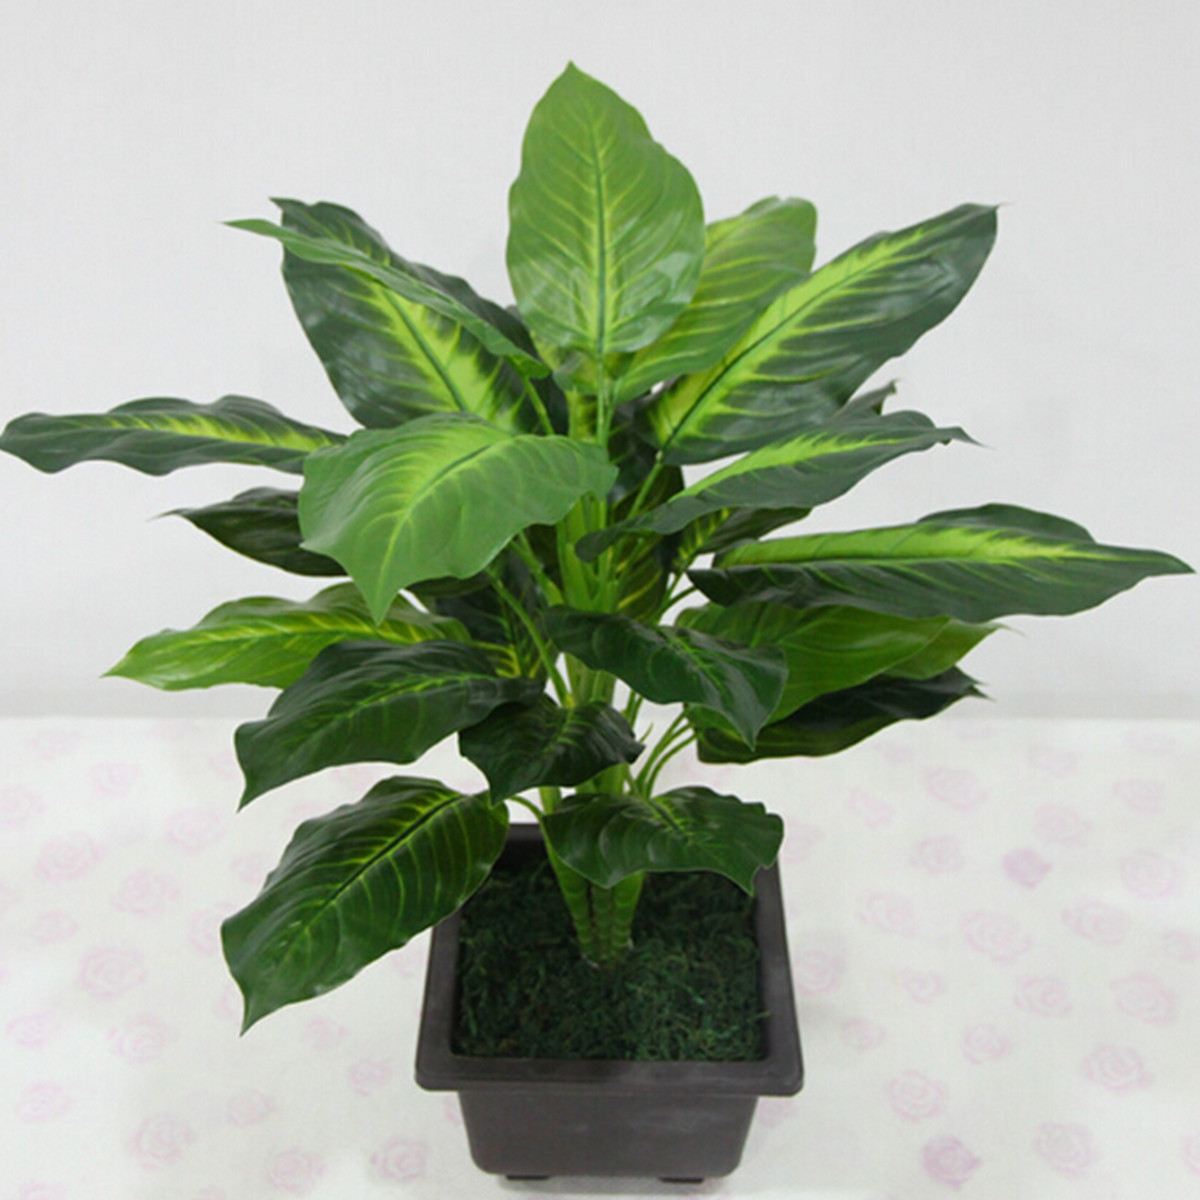 Lifelike Plants 50cm Lifelike Leaves Evergreen Artificial Plant Simulation